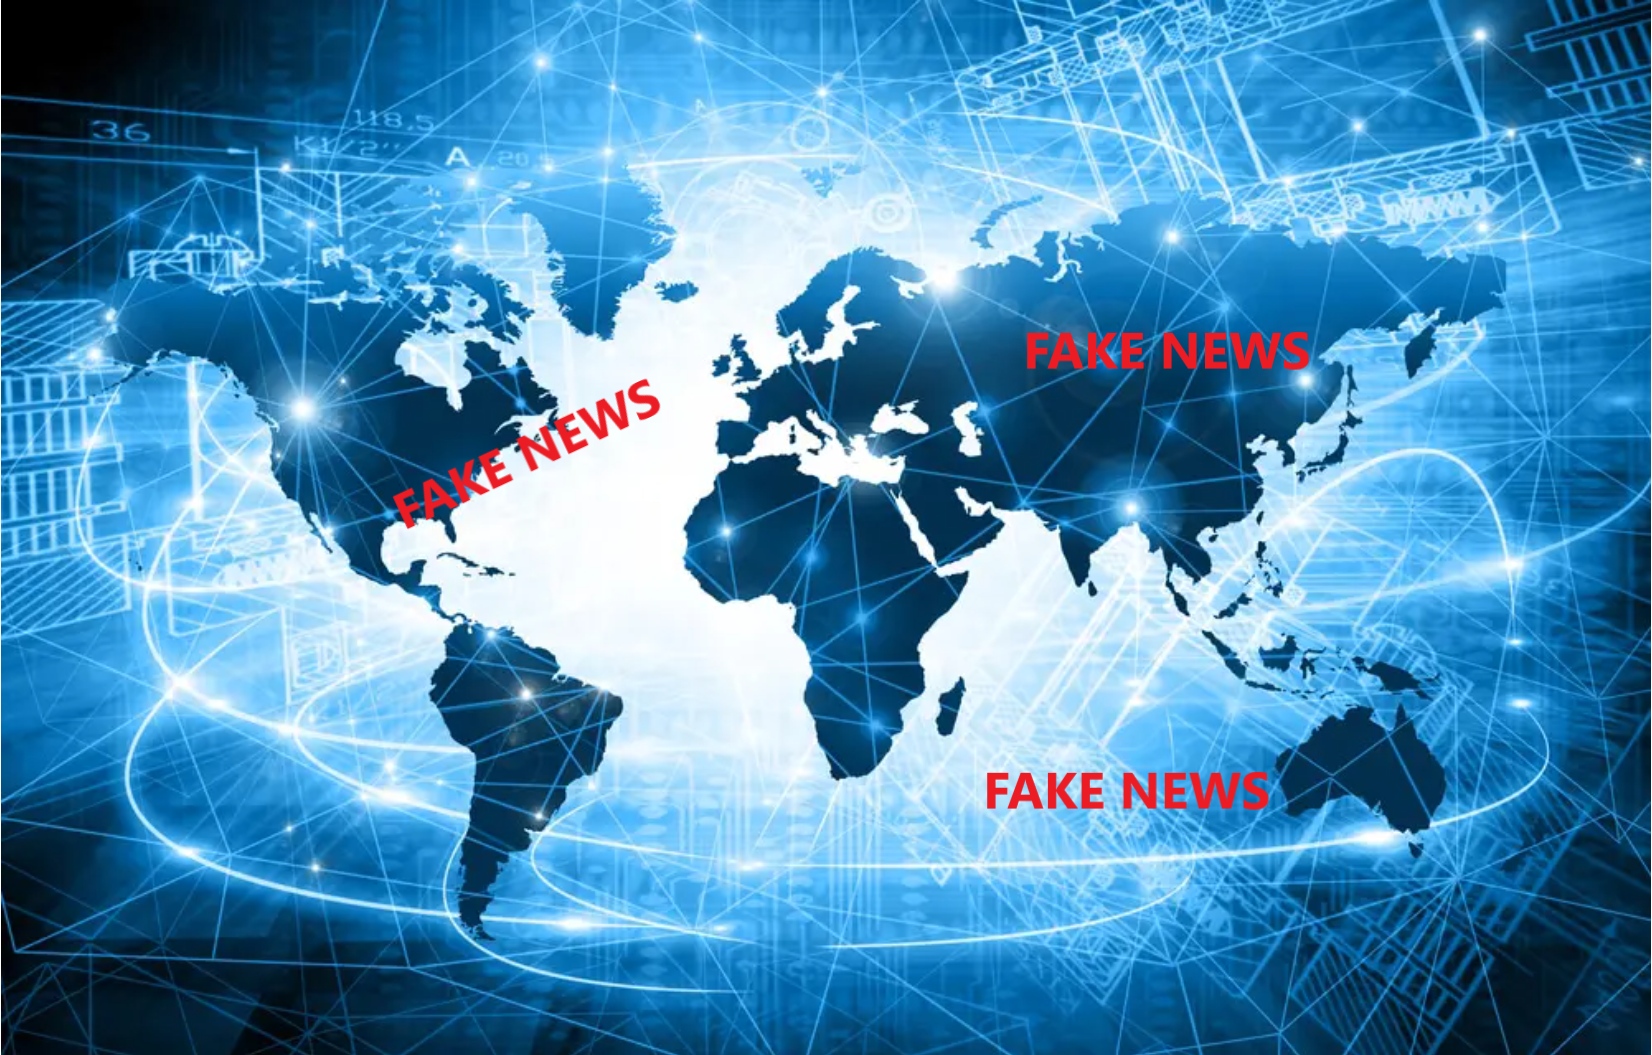 Fake News – what is it?